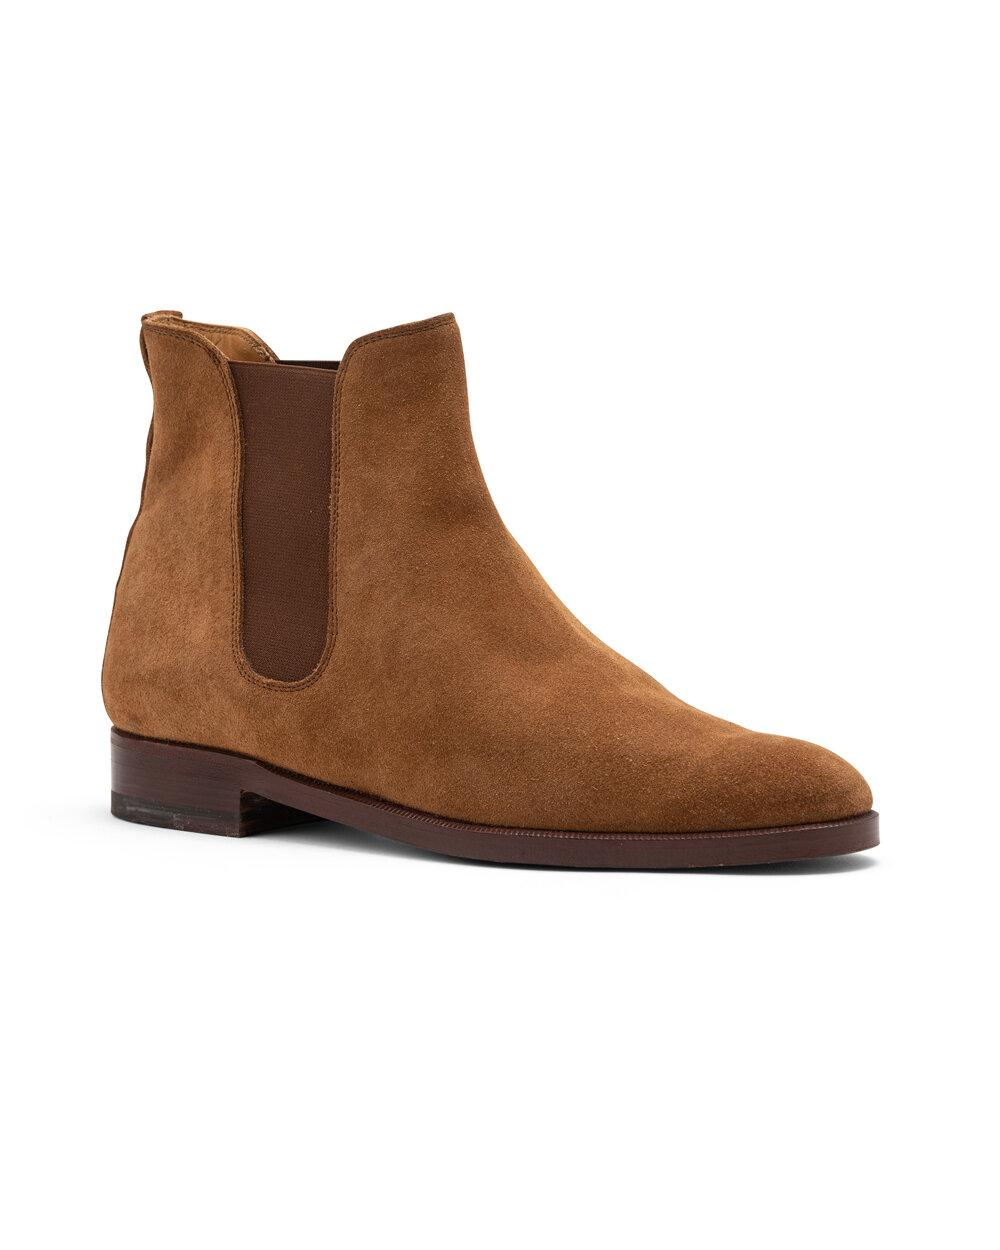 ODPEssentials Classic Chelsea Boot - Tan Suede 0